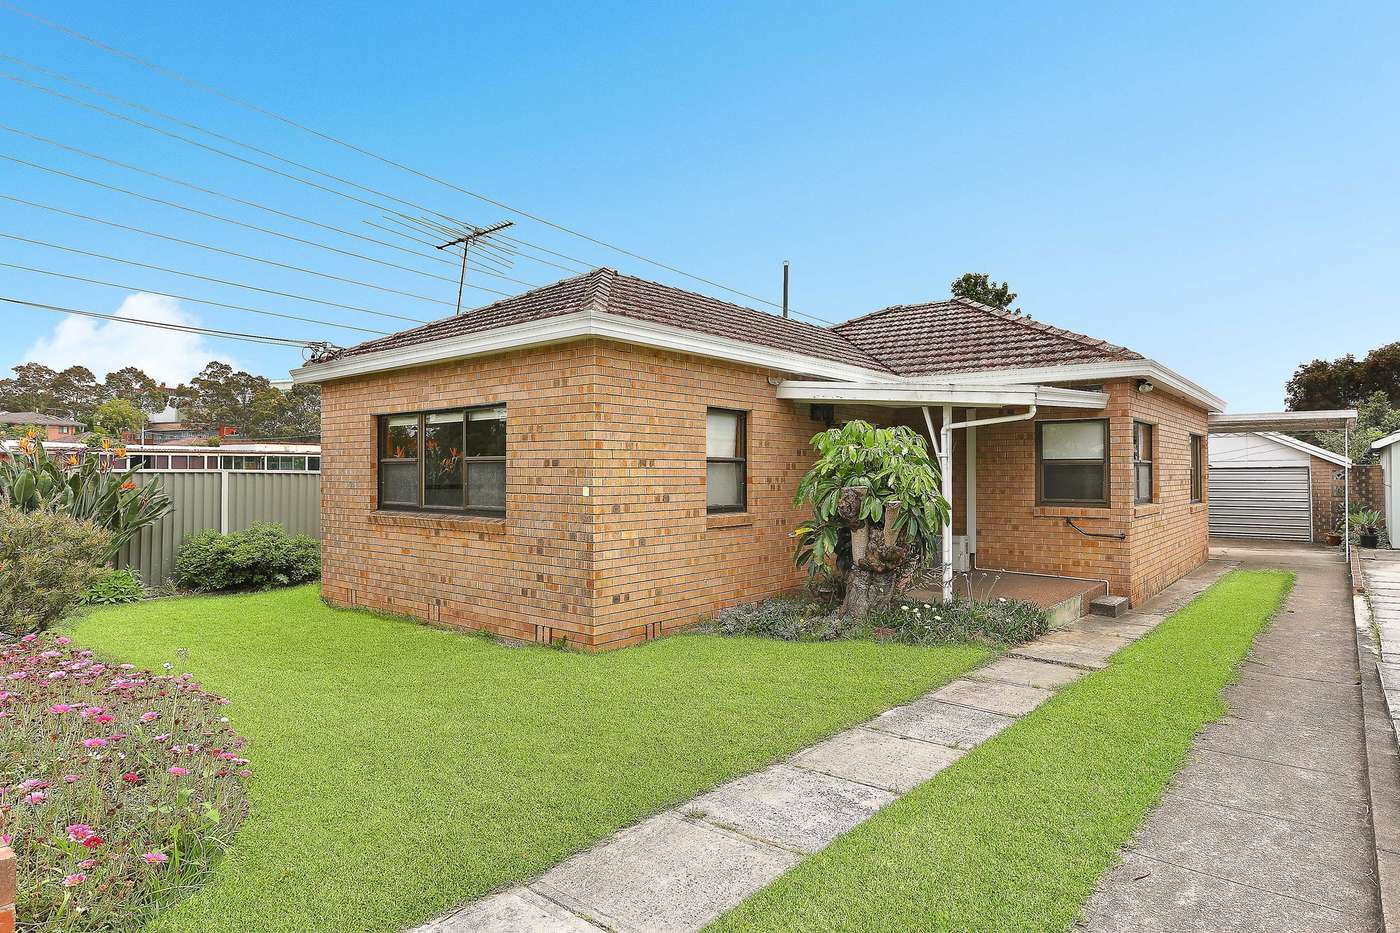 Main view of Homely house listing, 21 Malta Street, North Strathfield, NSW 2137